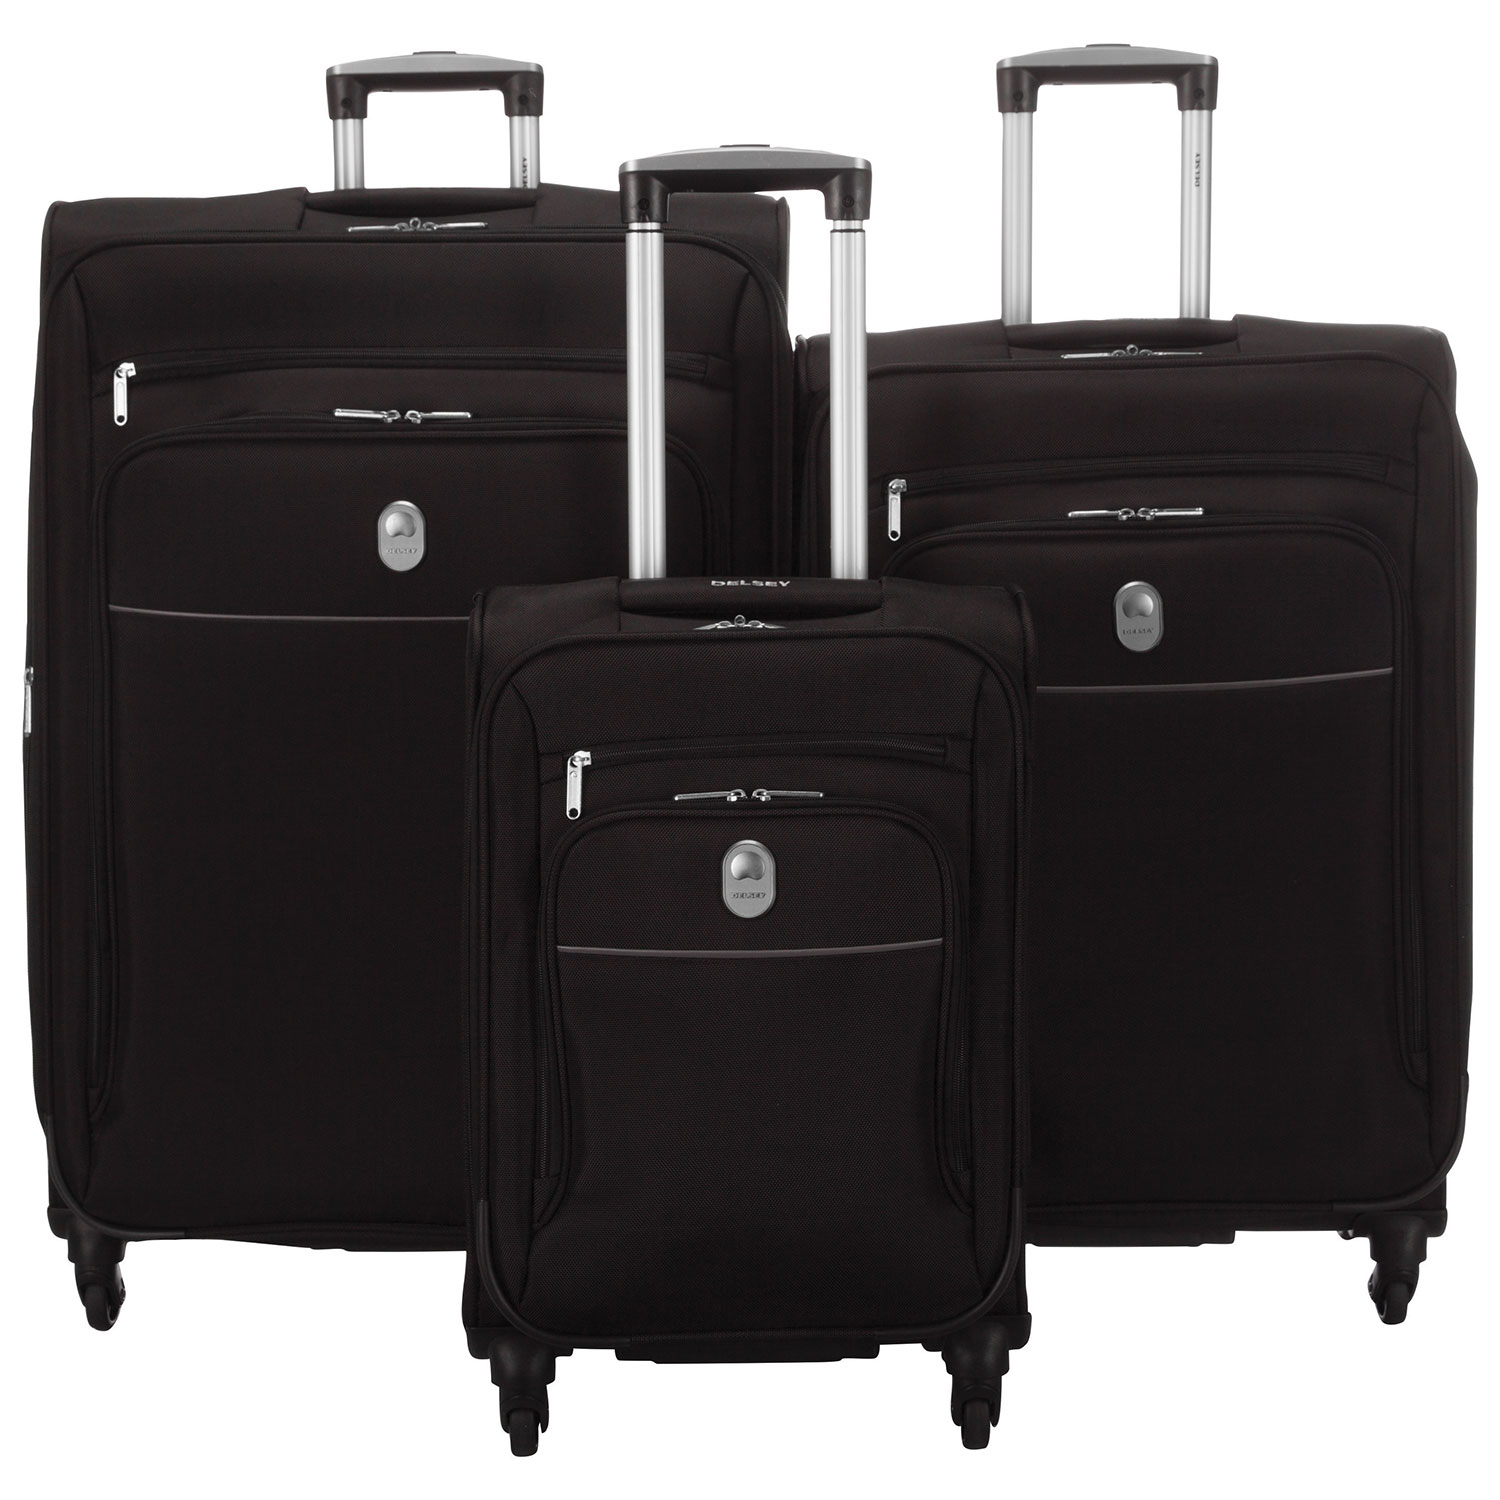 Luggage With Drawers Delsey Cannes 3 Piece Soft Side 4 Wheeled Expandable Luggage Set